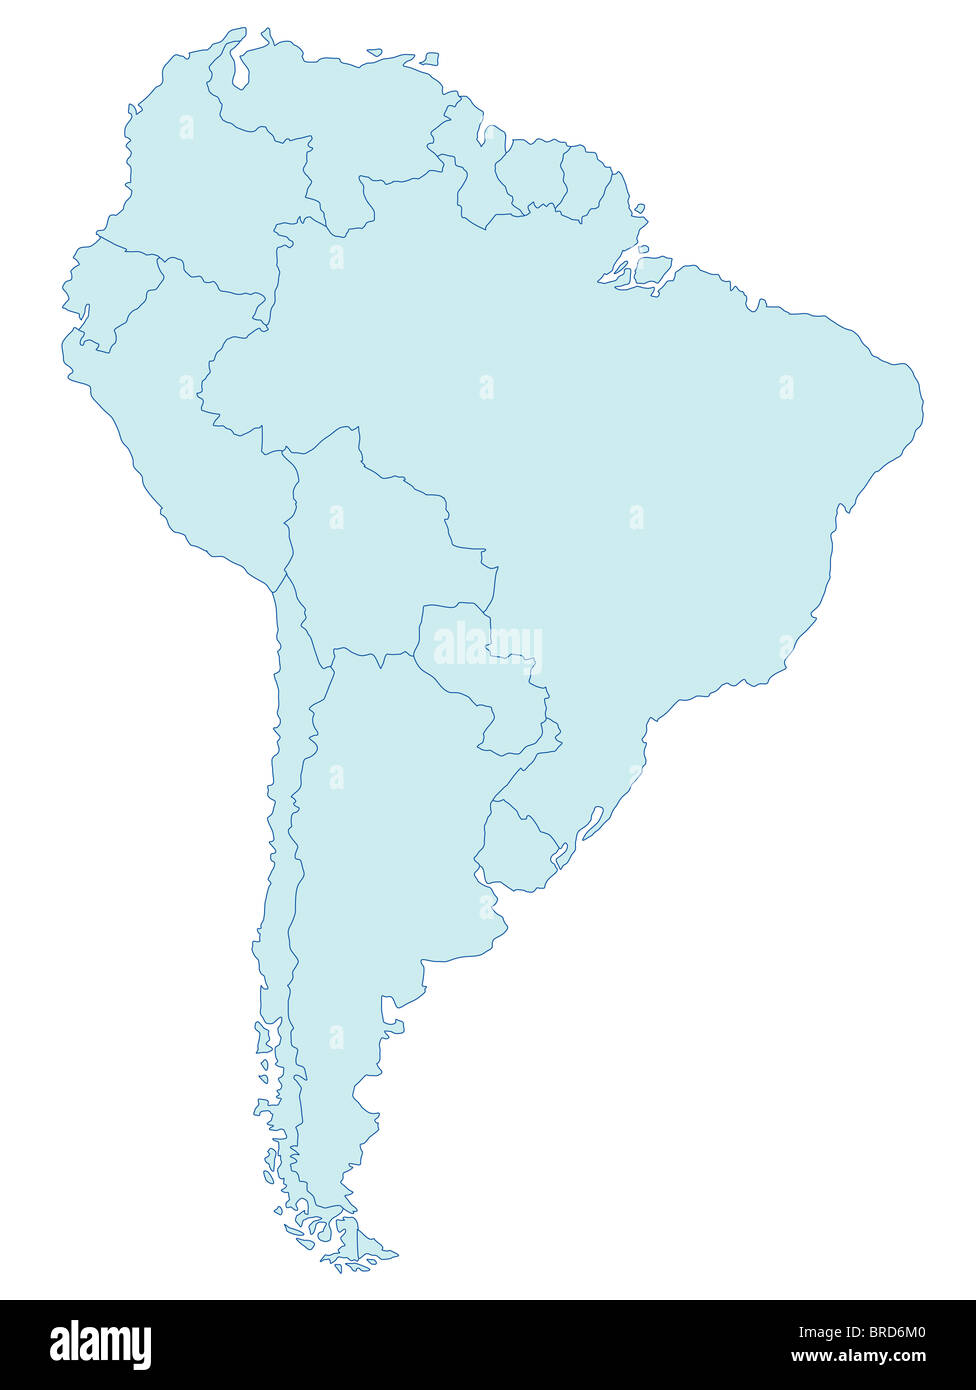 Argentina map stock photos argentina map stock images alamy stylized map of south america in blue tone all on white background stock gumiabroncs Gallery